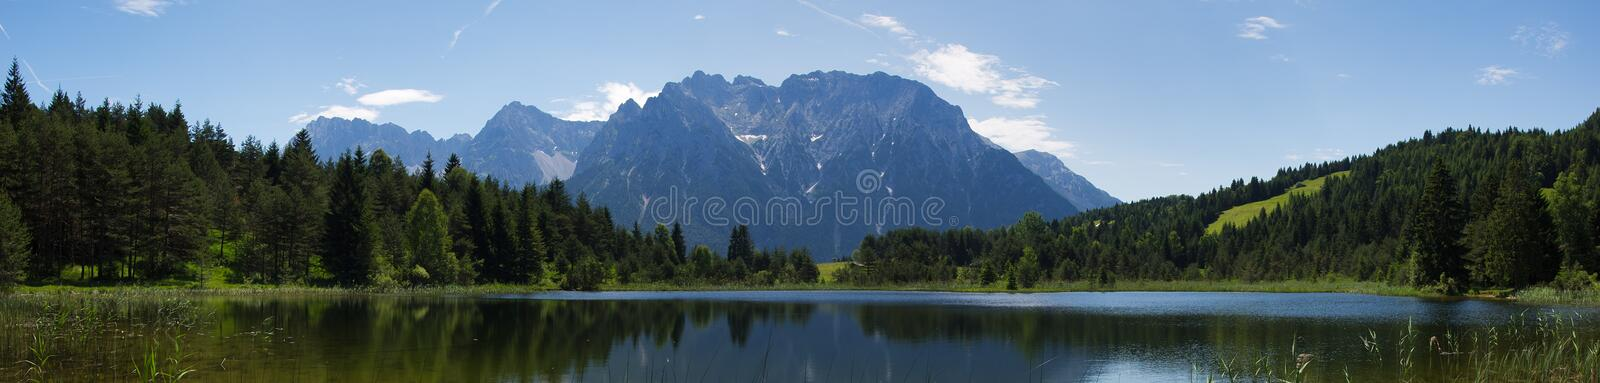 See in den Alpen stockbild